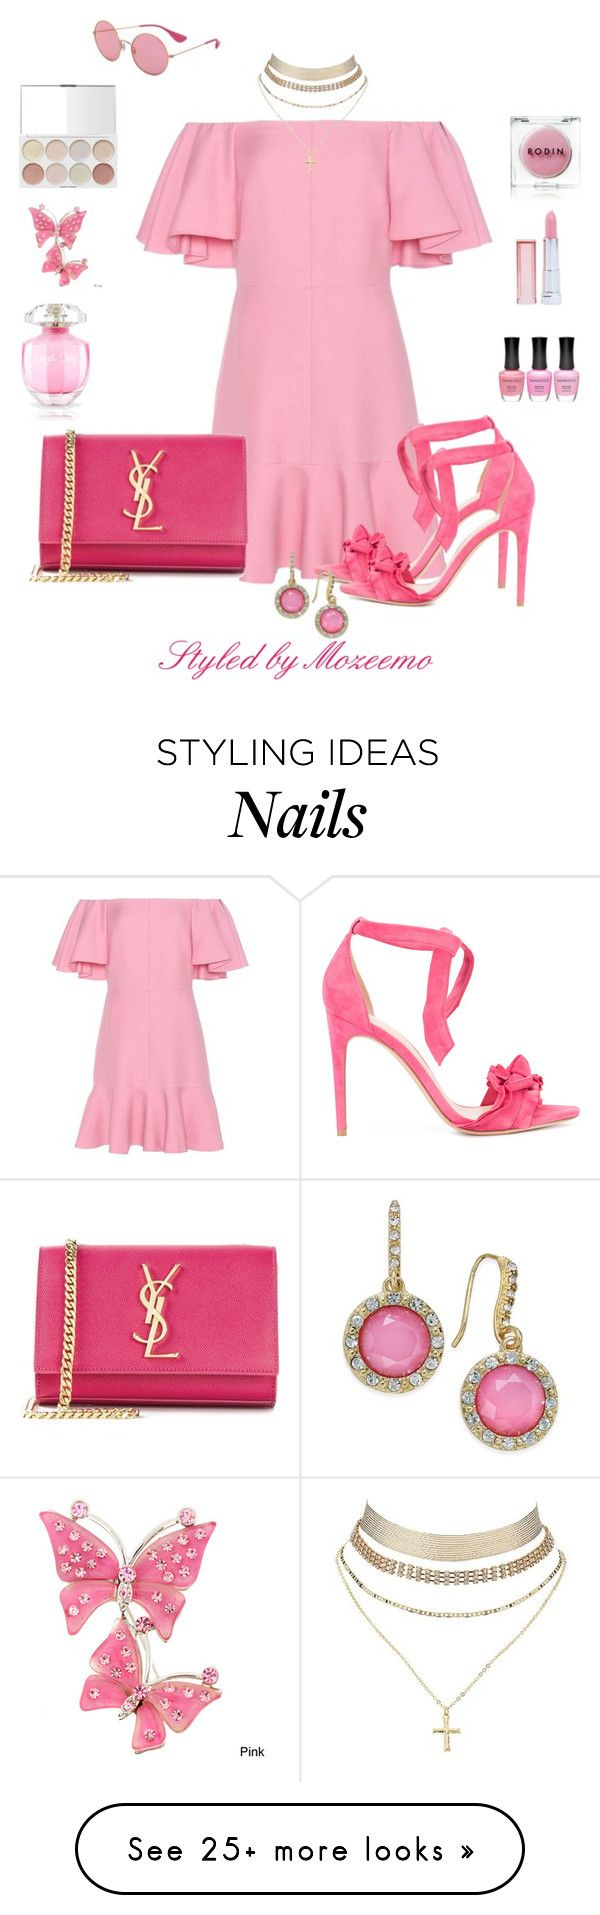 """""""Valentino Off-the-Shoulder Dress"""" by mozeemo on Polyvore featuring Valentino, Yves Saint Laurent, Alexandre Birman, Charlotte Russe, INC International Concepts, Maybelline, Nanacoco, Victoria's Secret, Rodin and Ray-Ban"""